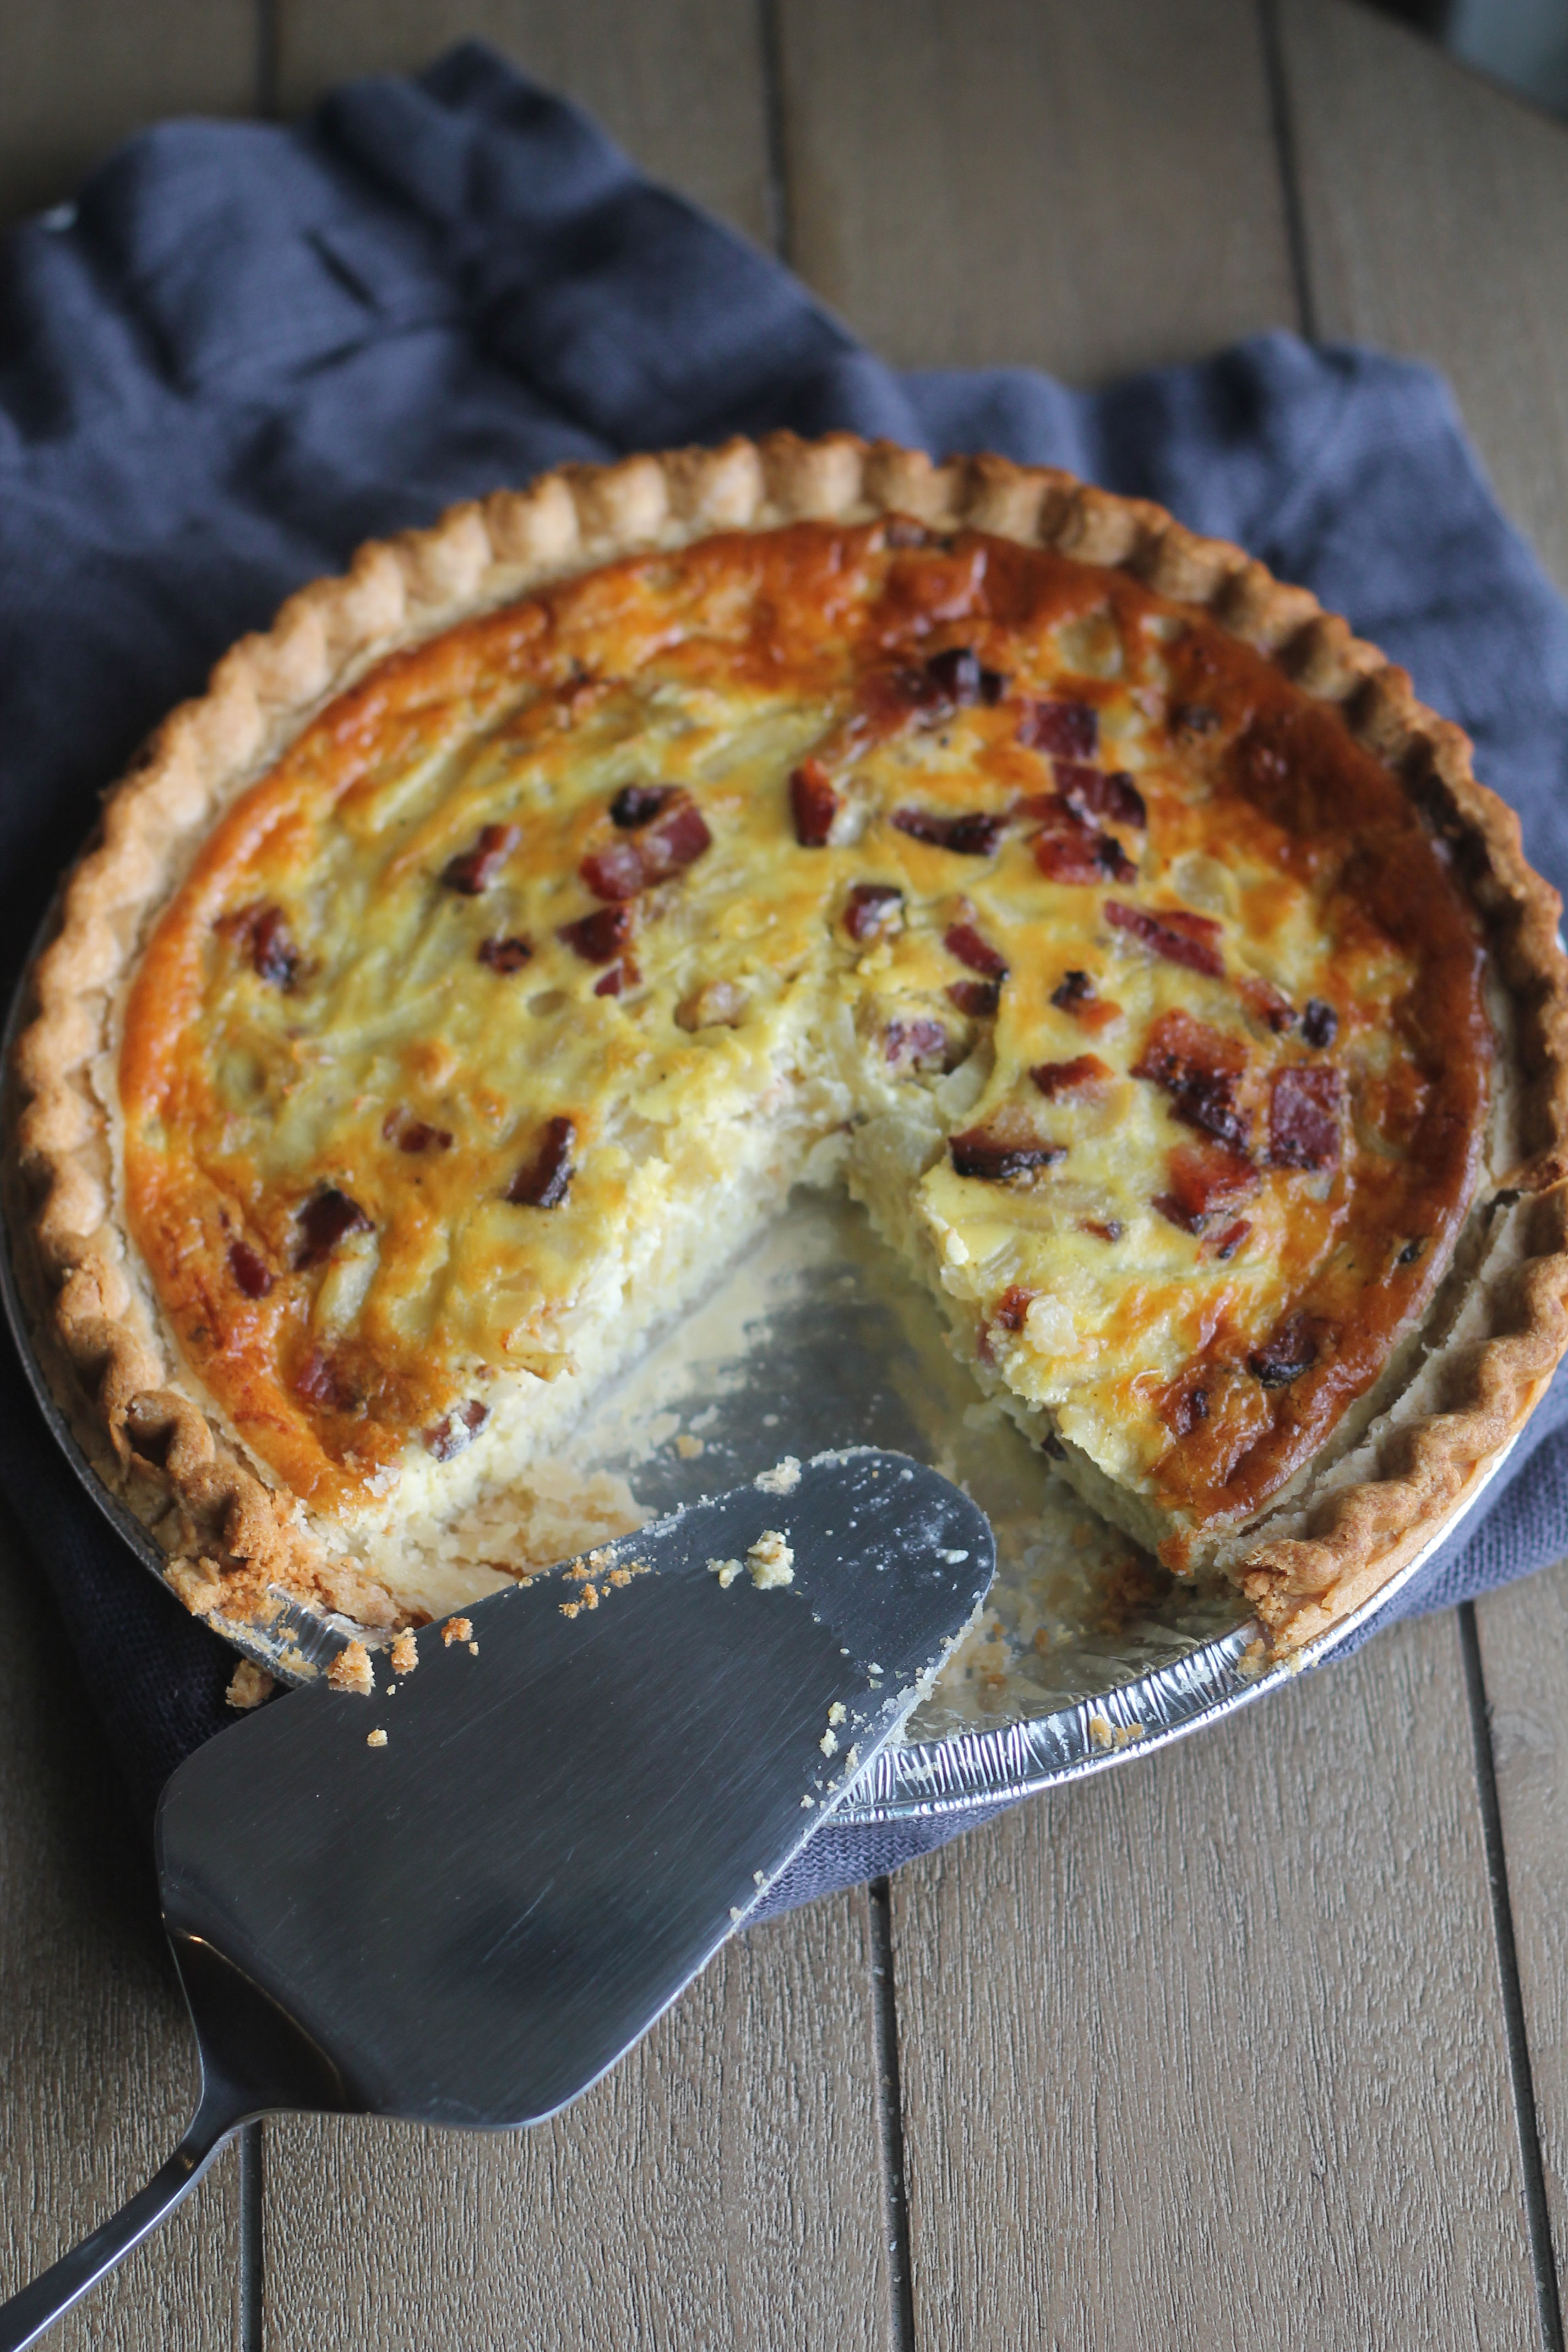 This Caramelized Onion, Bacon and Gruyere Quiche is rich, creamy and is sure to hit the spot